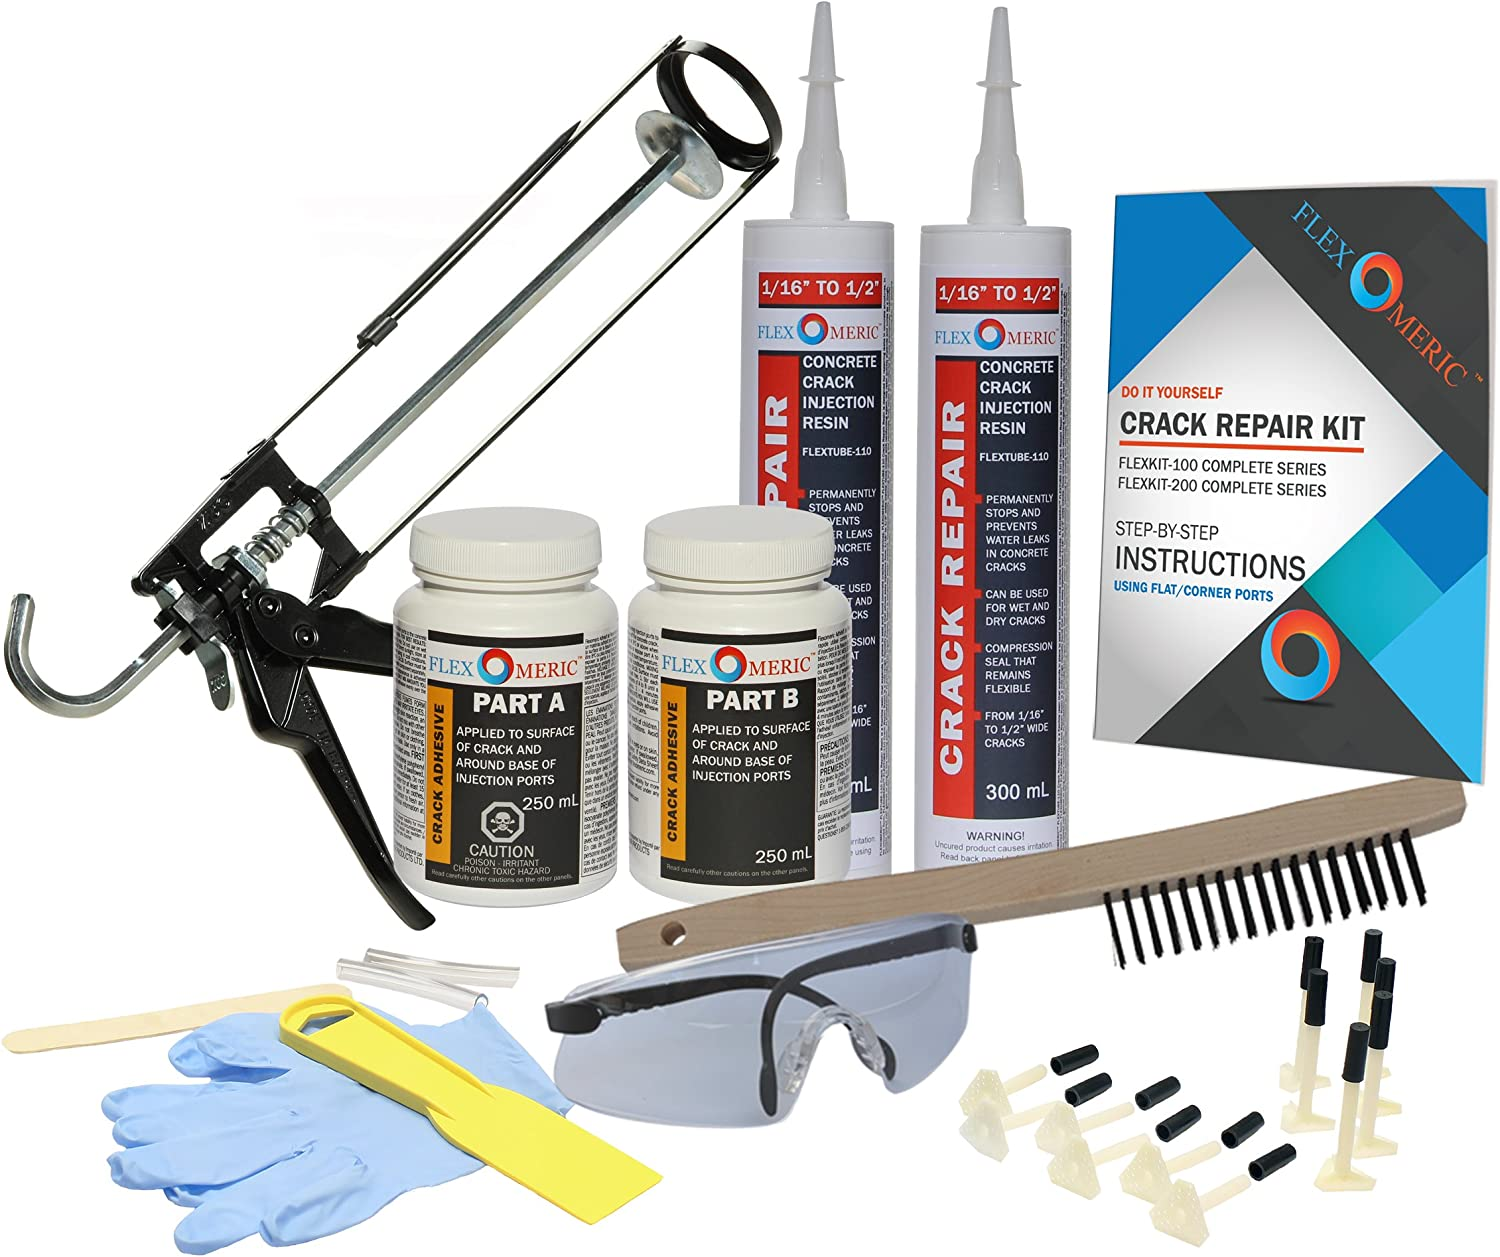 "Complete Foundation Crack Repair Kit - 1/16"" to 1/2"" Wide Cracks  (FLEXKIT-100-COM) - - Amazon.com"